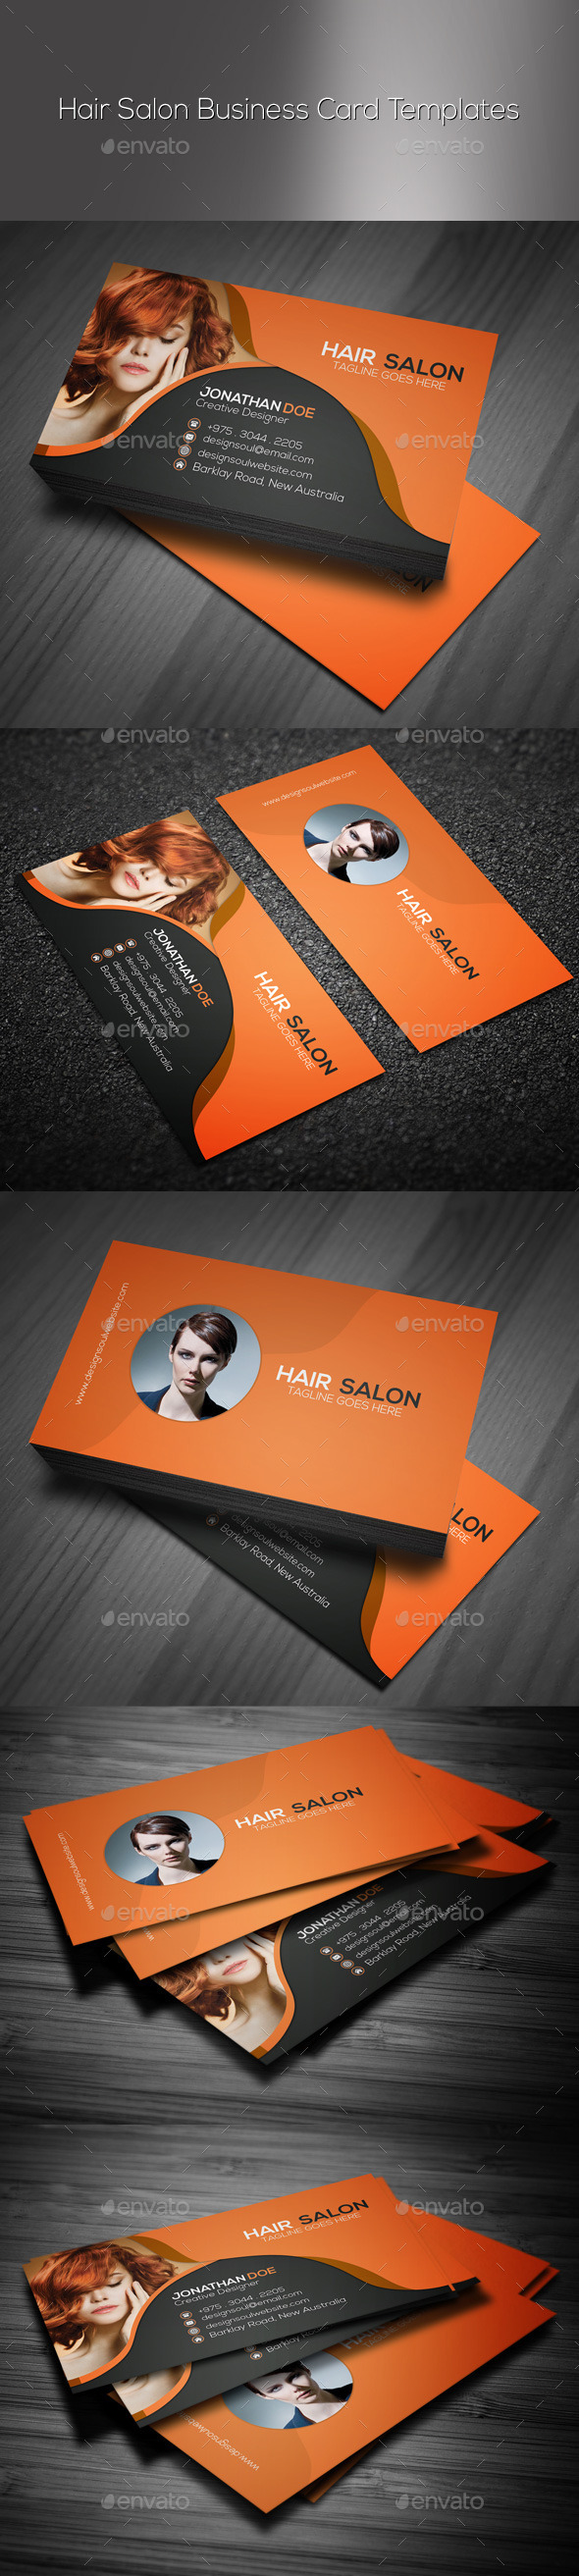 Hair Stylist Business Cards Horetskatk - Hair stylist business card template